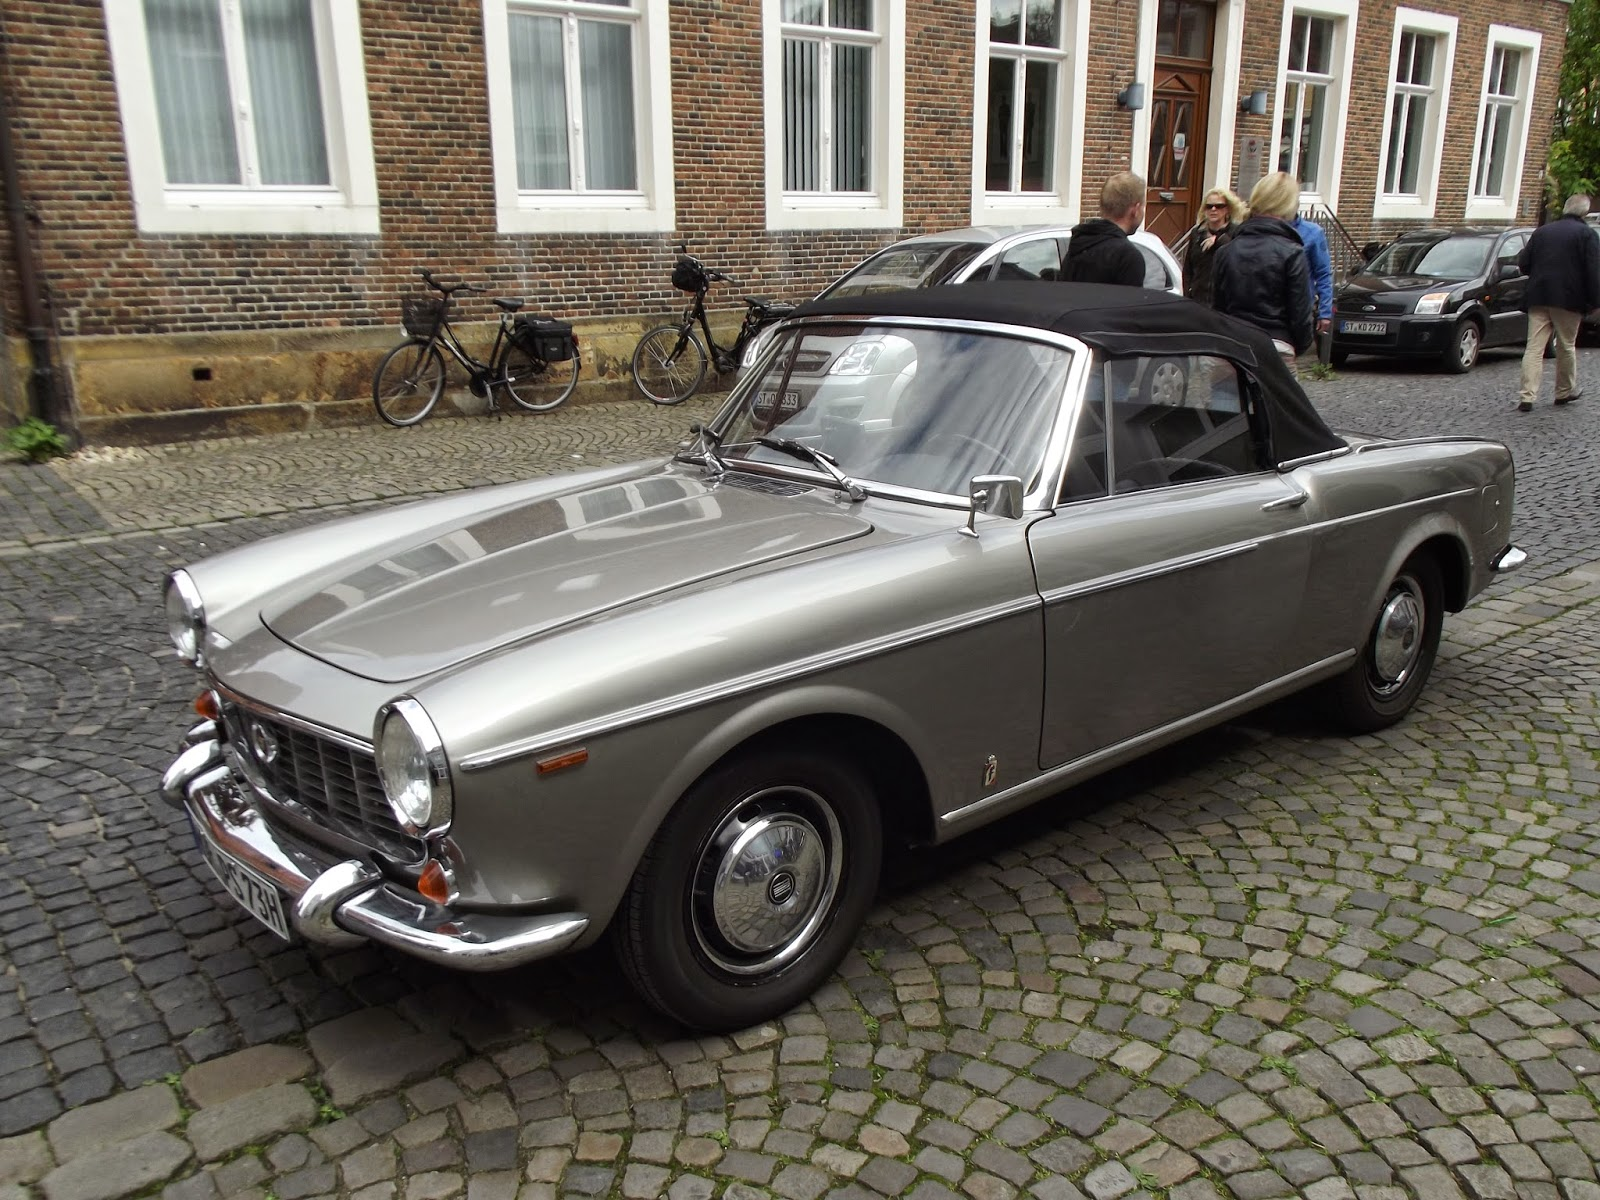 A Fiat 1500 at a vintage car event in Germany in May 2014